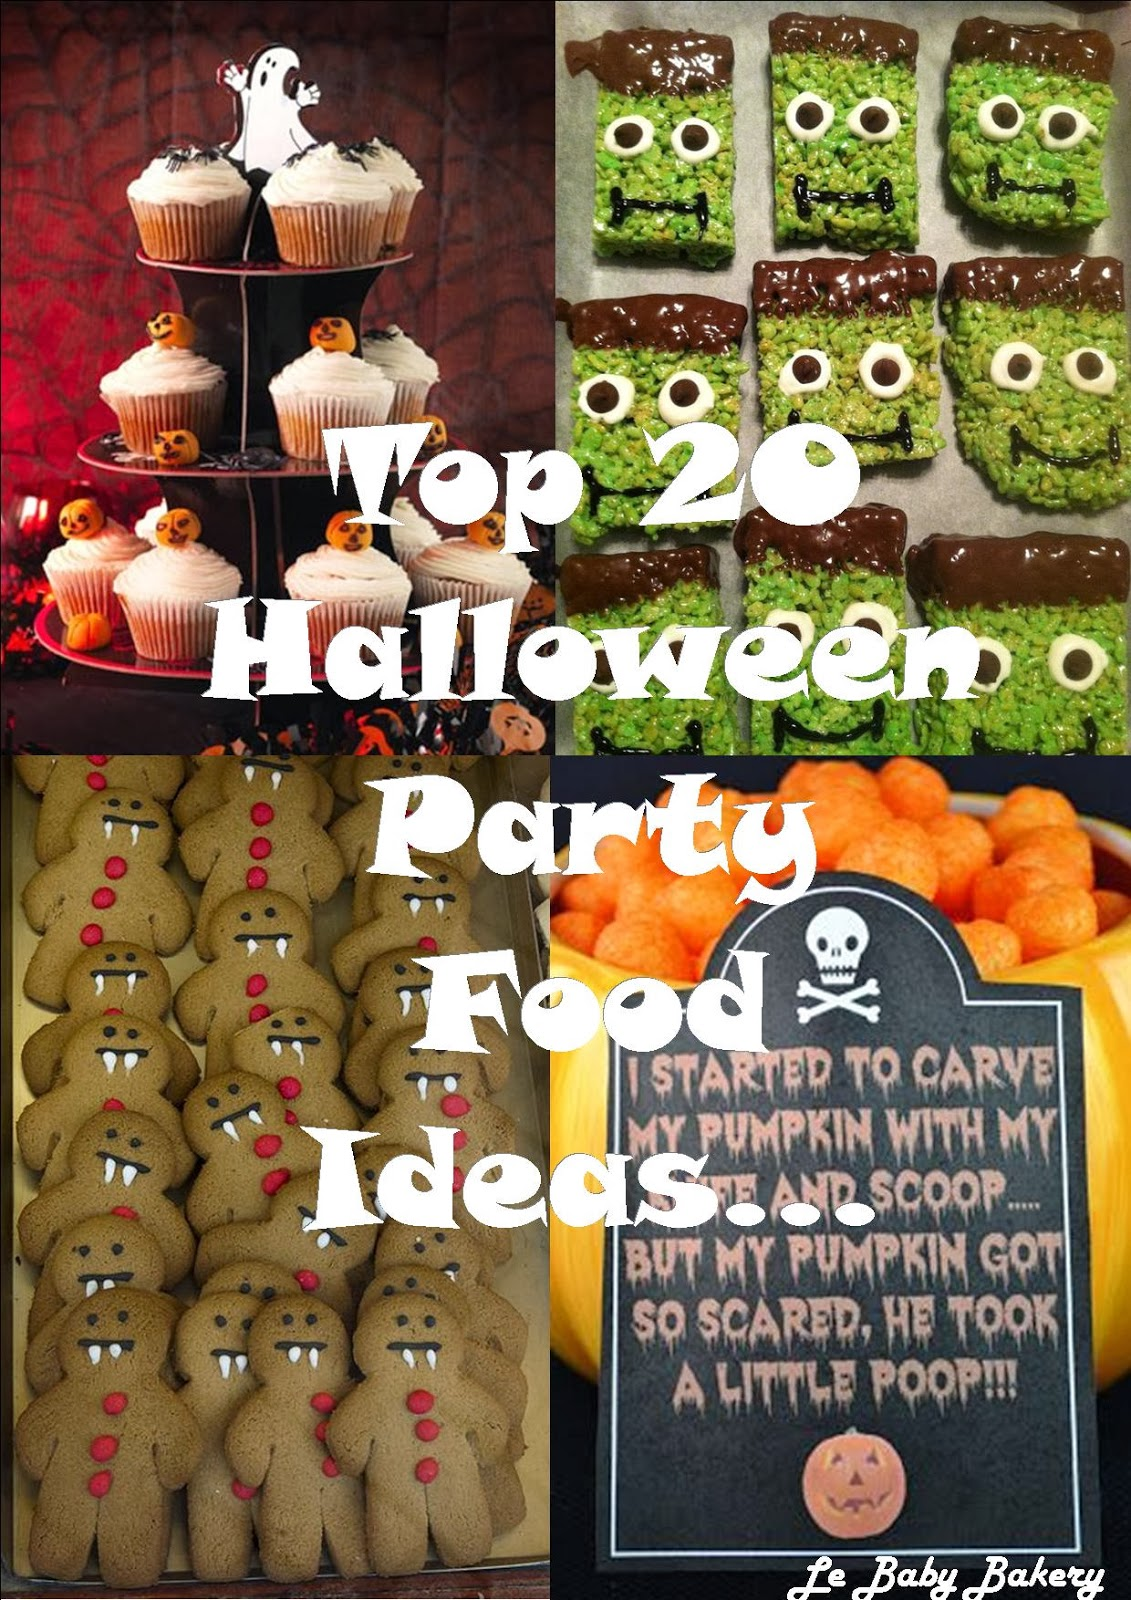 Top 20 Halloween Party Food Ideas